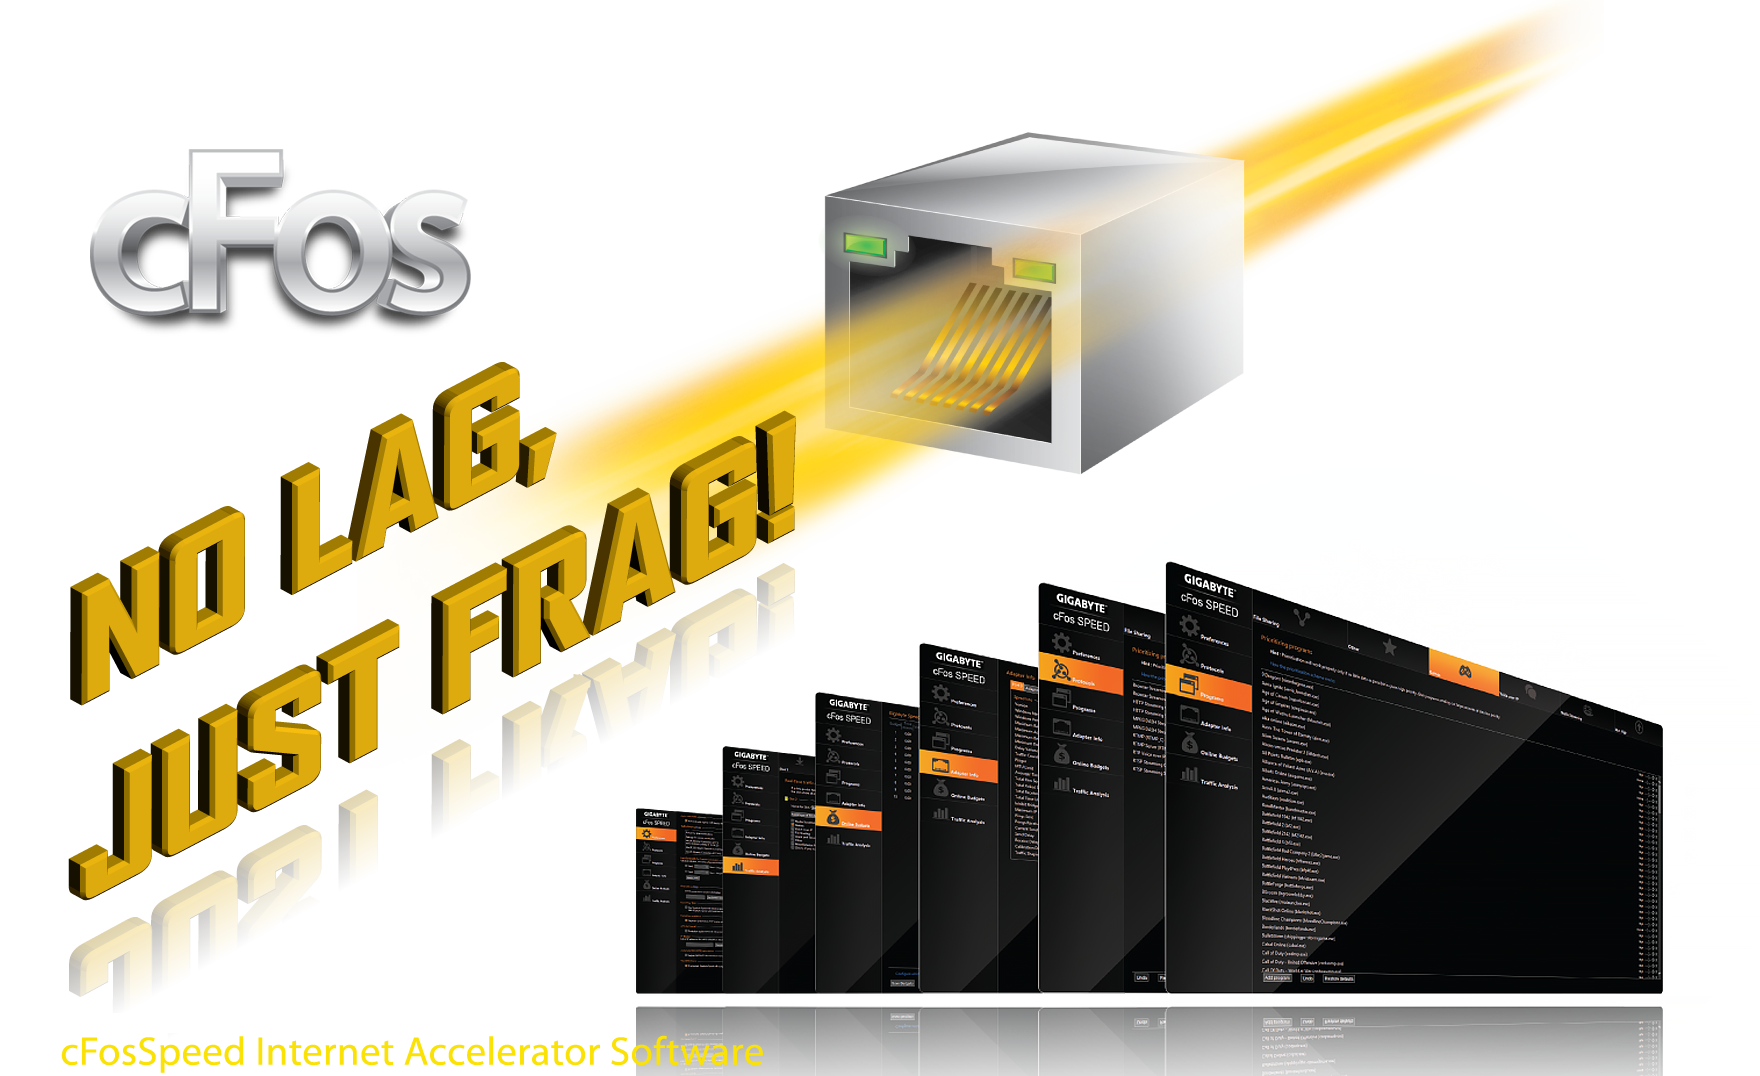 Ga z270xp sli rev 10 motherboard gigabyte global intel gigabit lan features cfosspeed a network traffic management application which helps to improve network latency and maintain low ping times to nvjuhfo Image collections